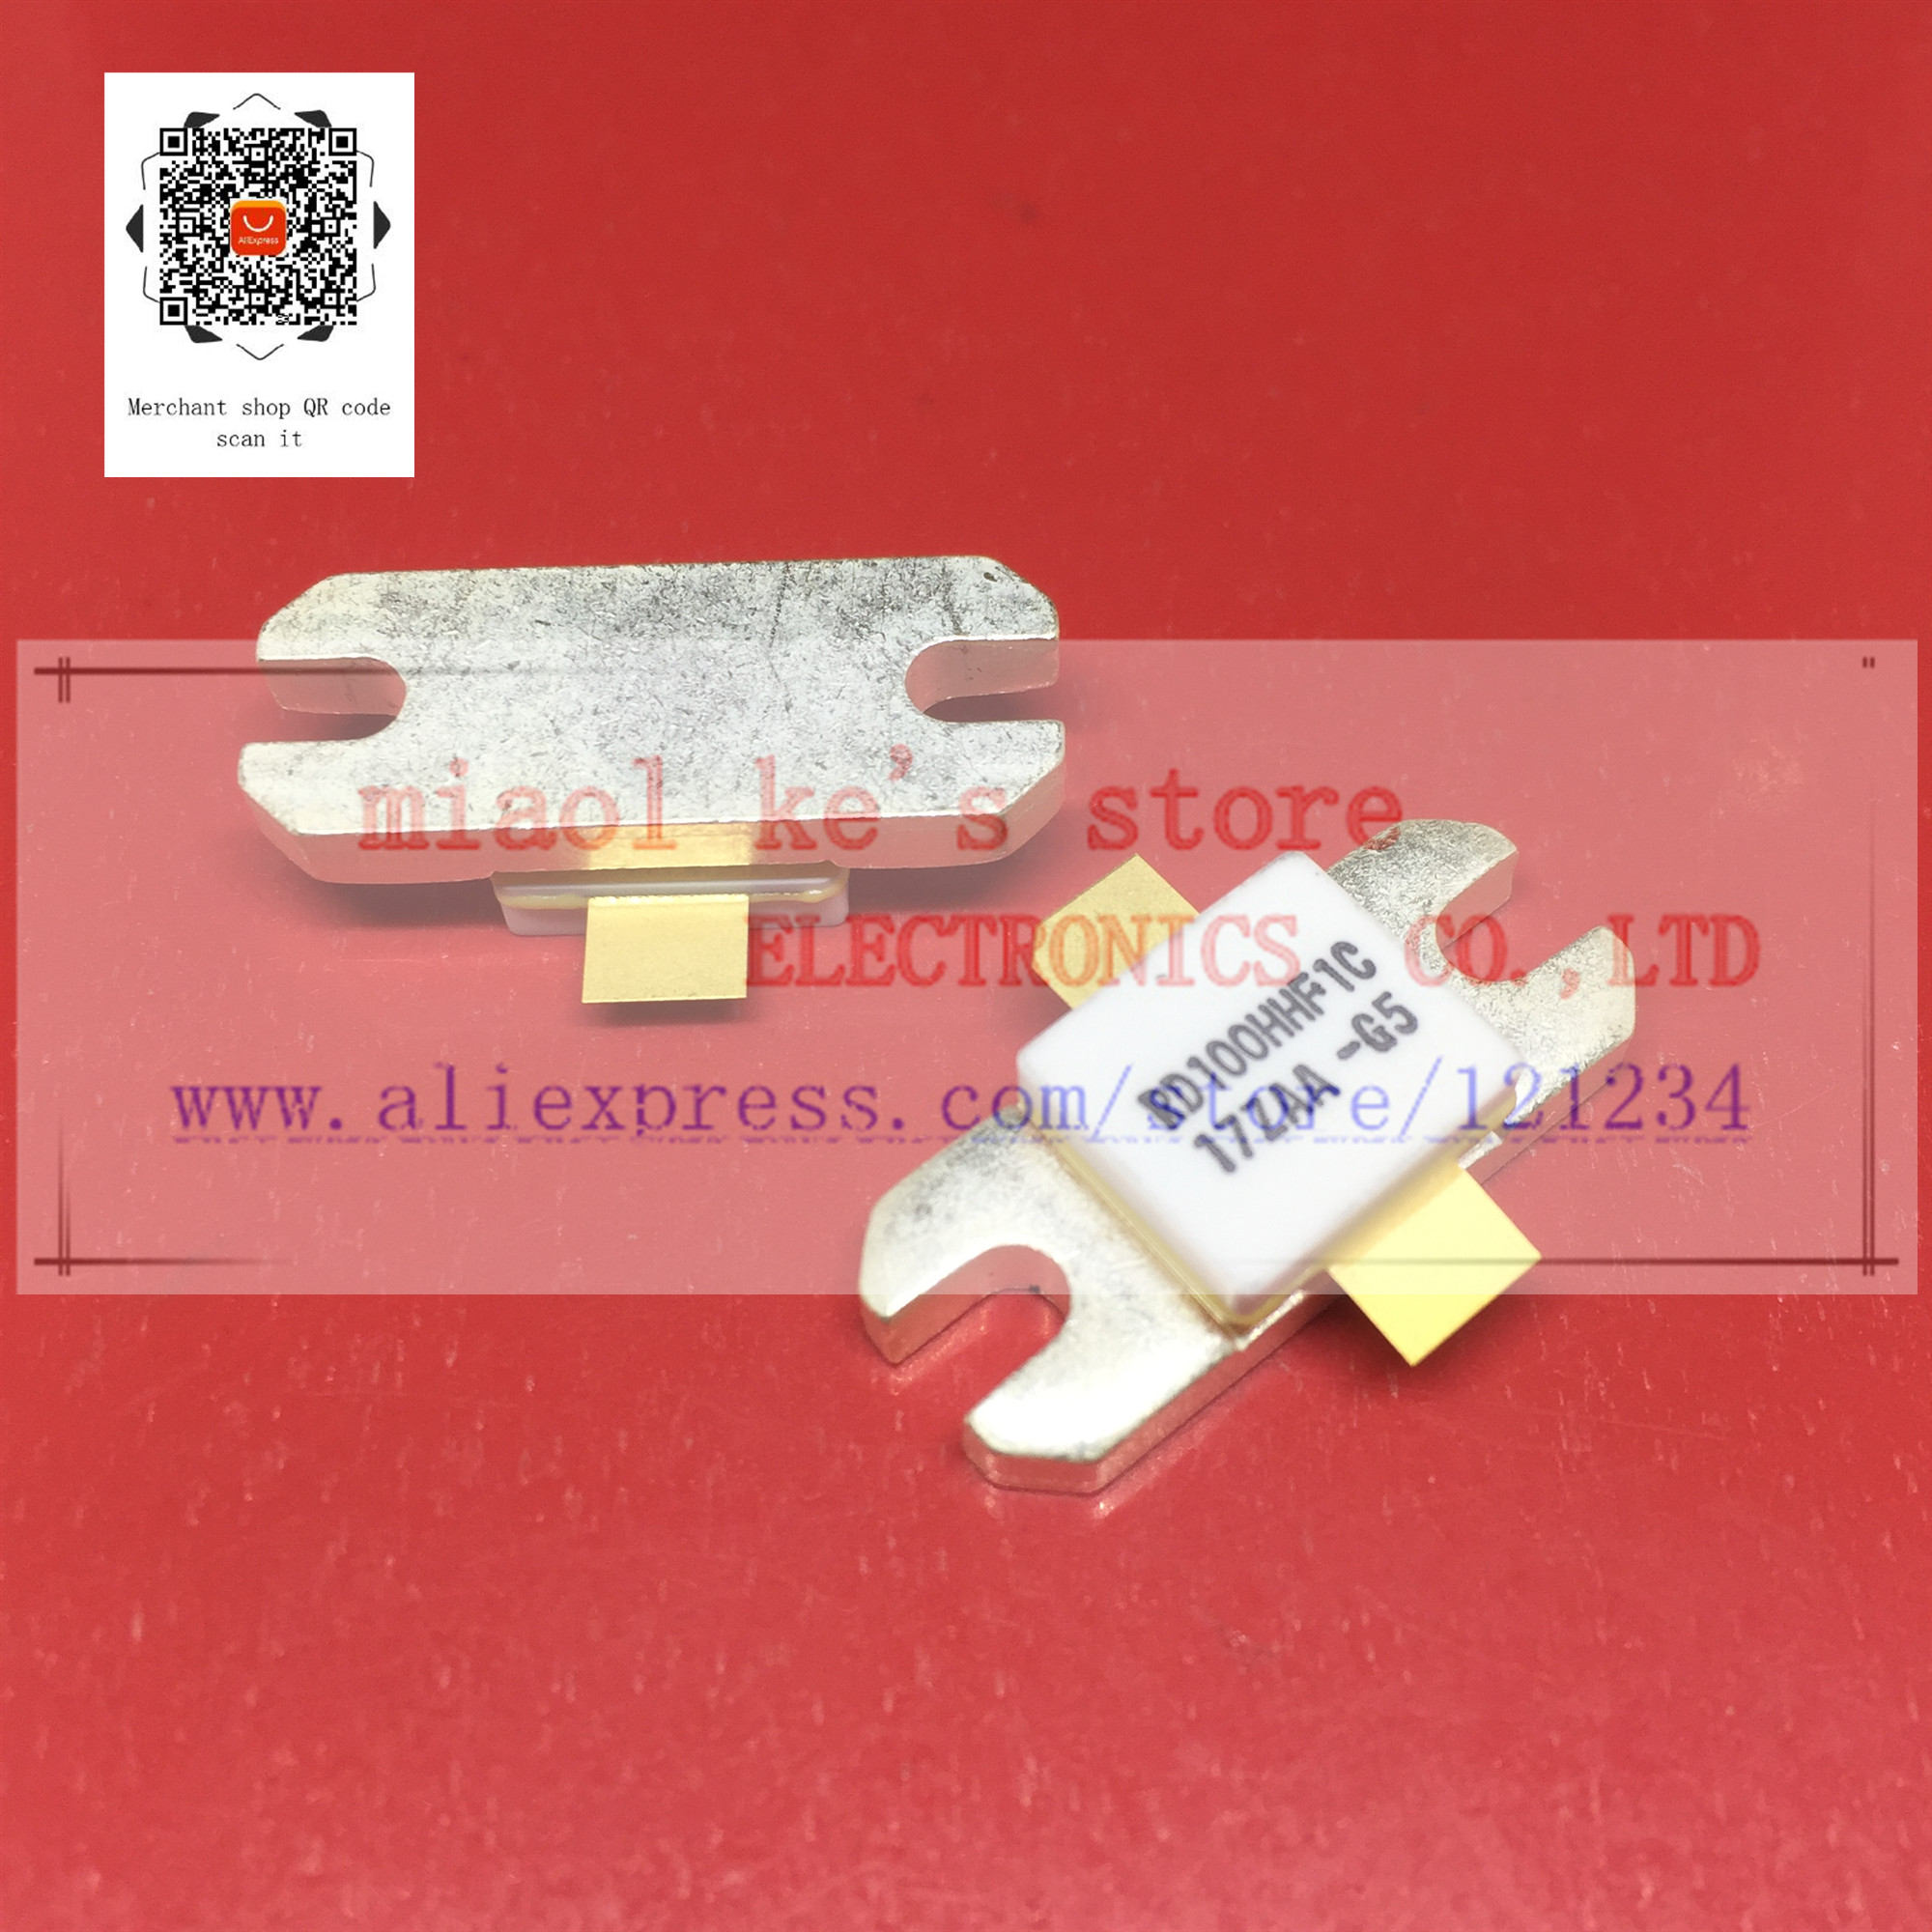 100%New Original; RD100HHF1  RD100HHF1C  RD100HHF1-101 RD100HHF1C-501 - Silicon MOSFET Power Transistor 30MHz,100W